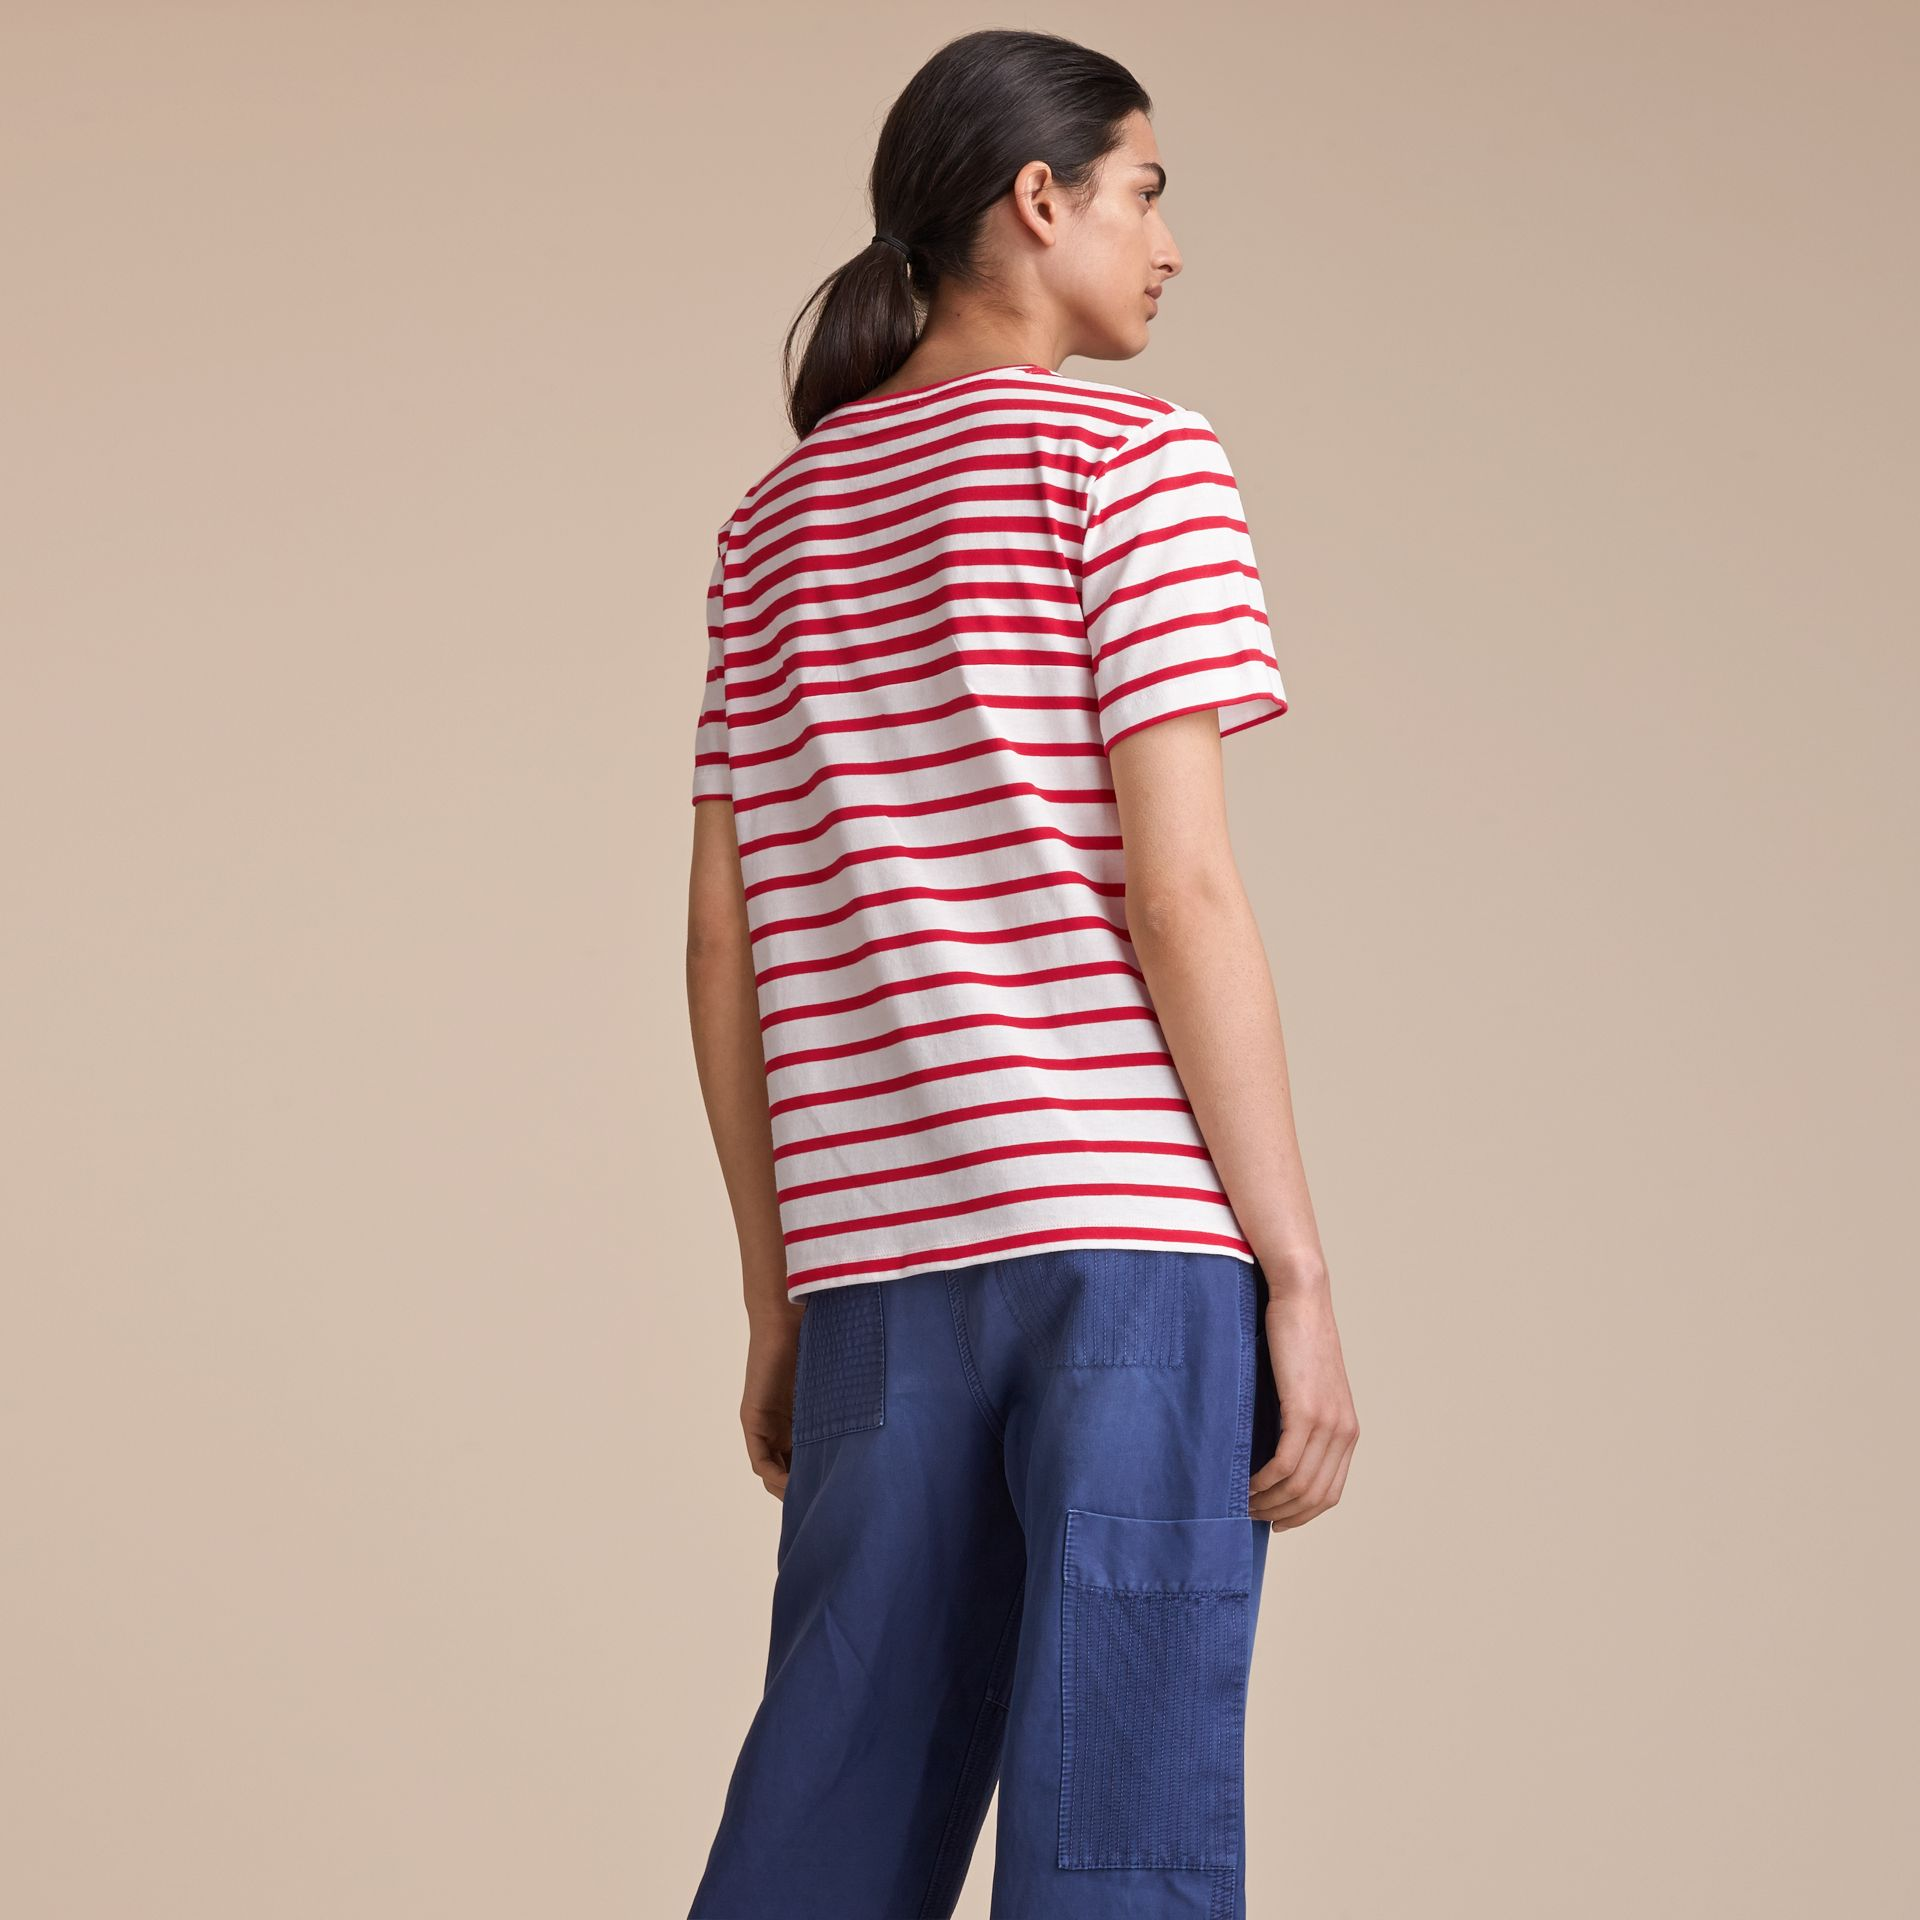 Breton Stripe Cotton T-shirt in Military Red/white - Women | Burberry United Kingdom - gallery image 3